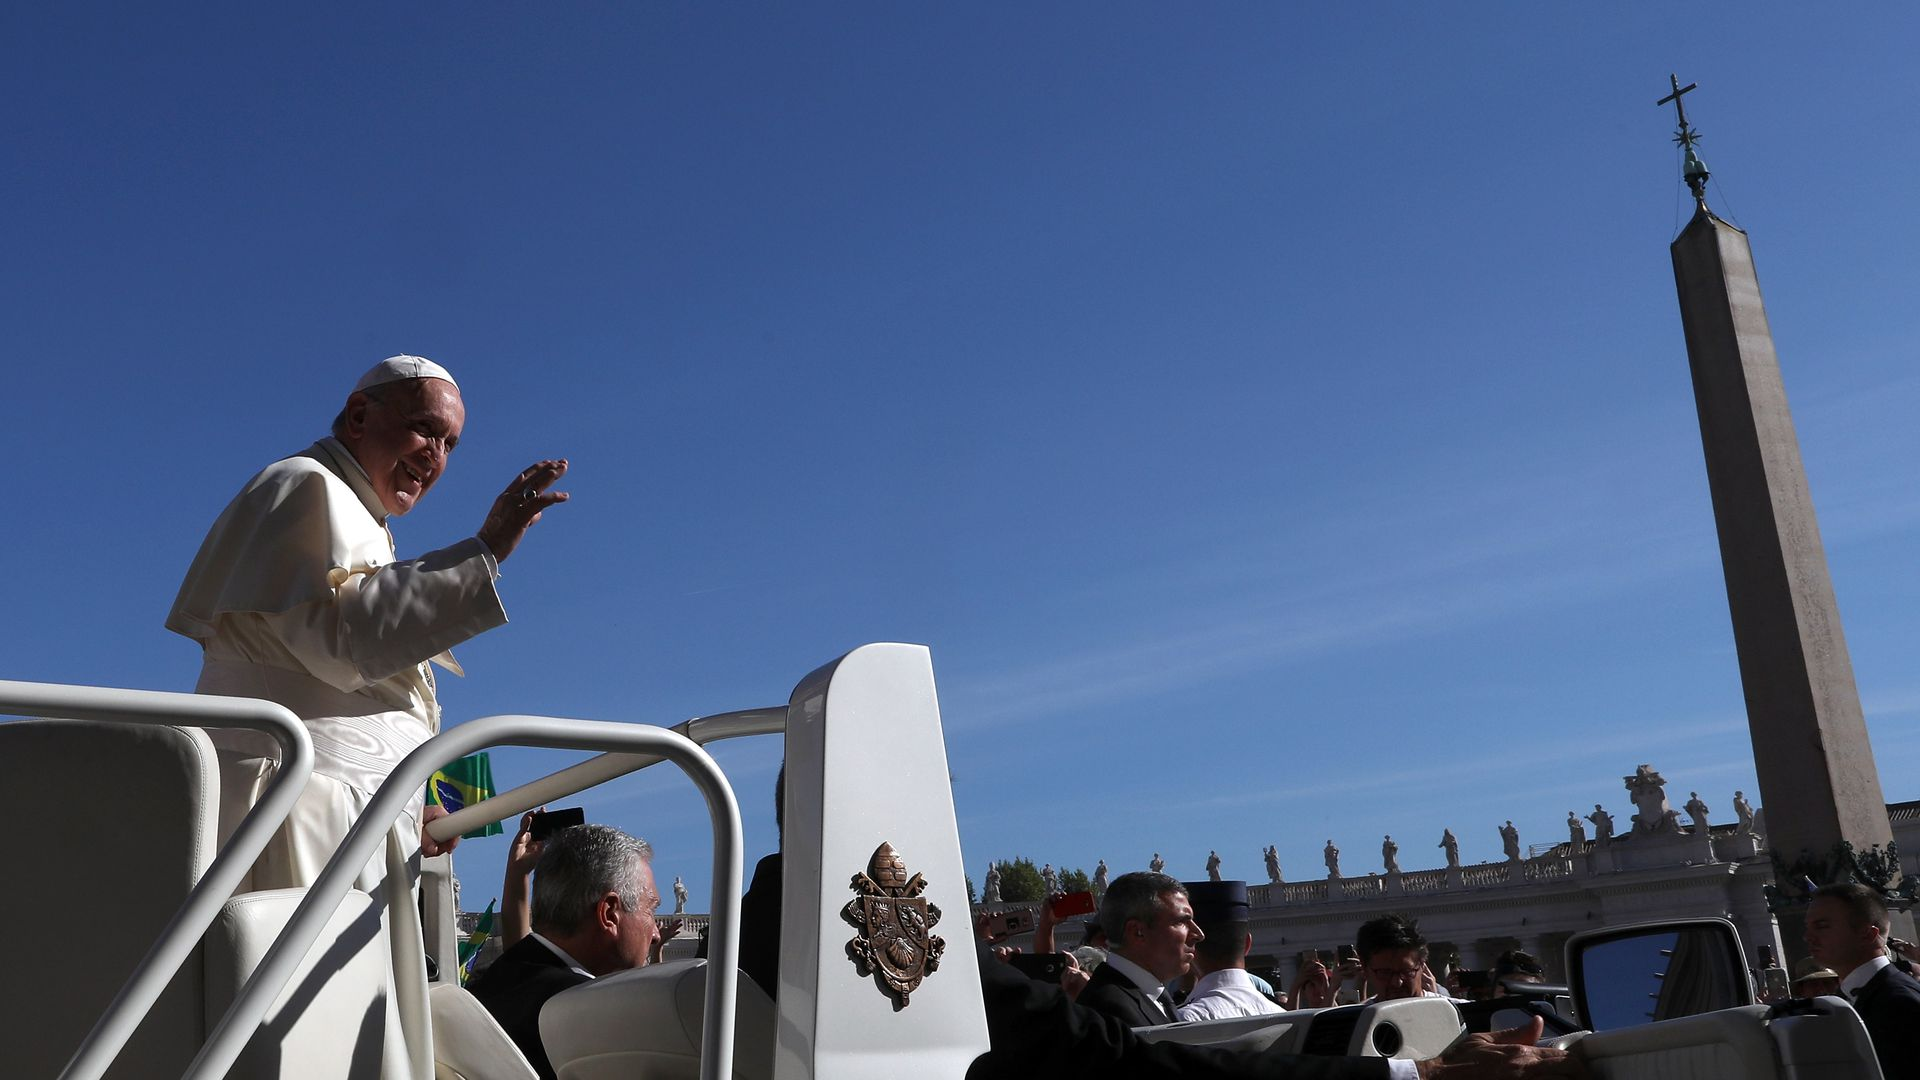 Pope Francis waving to a crowd.